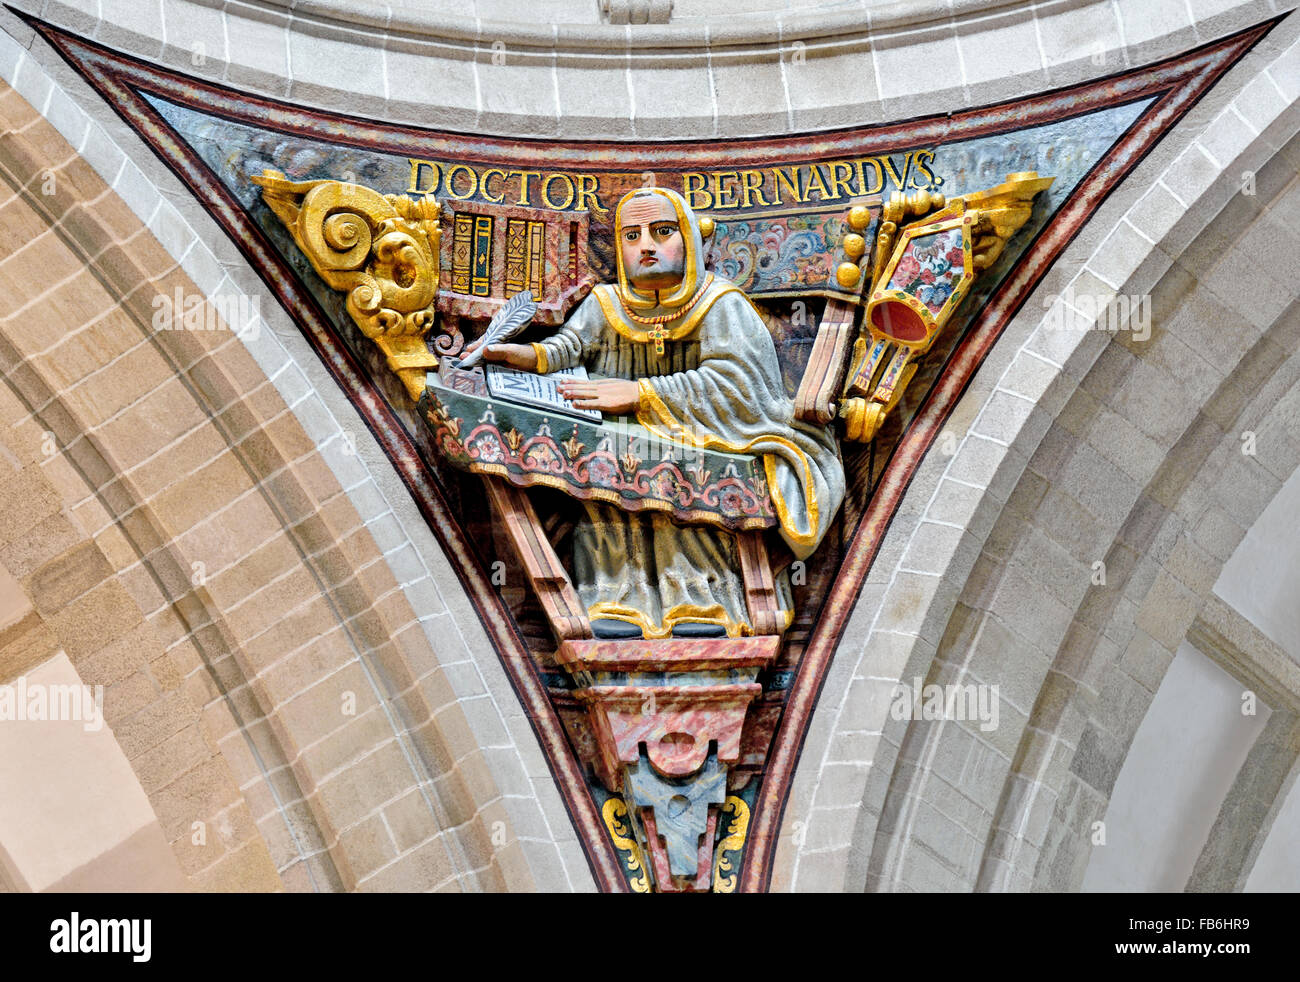 Spain, St. James Way: Relief of Doctor Bernardus in the basilica of the Monastery Samos in Galicia - Stock Image